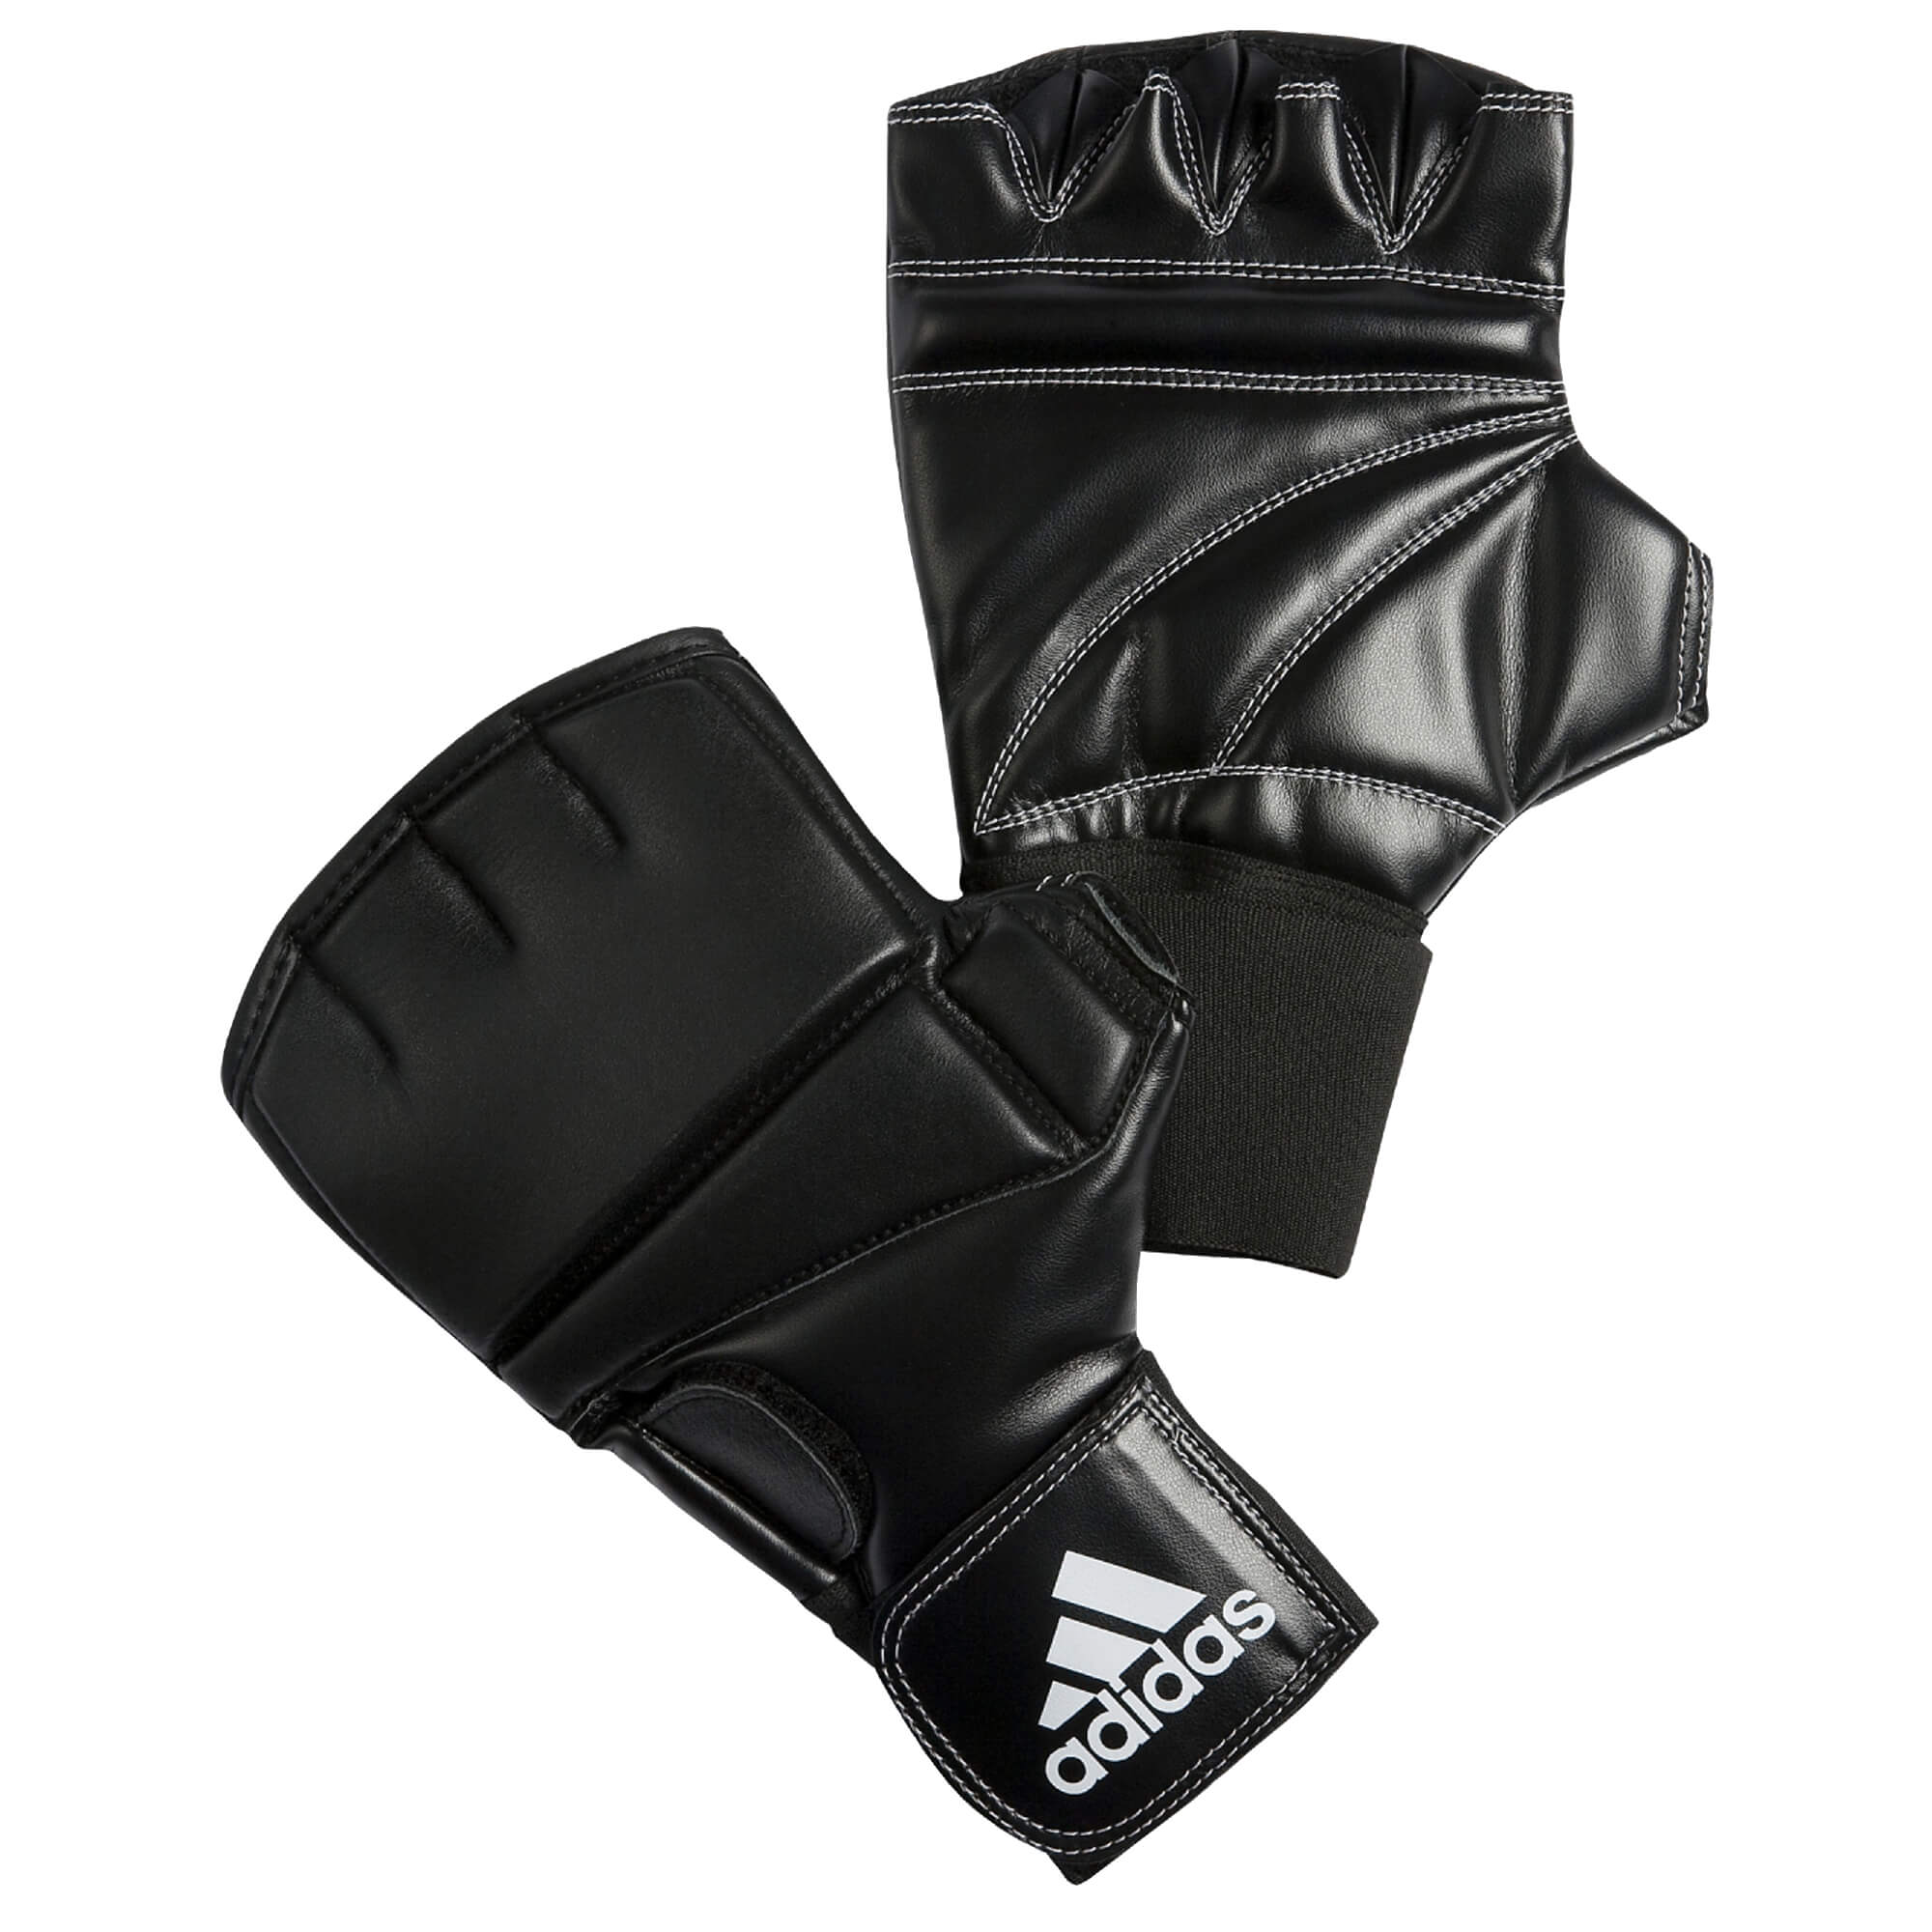 Speed Gel Bag Glove adidas poza